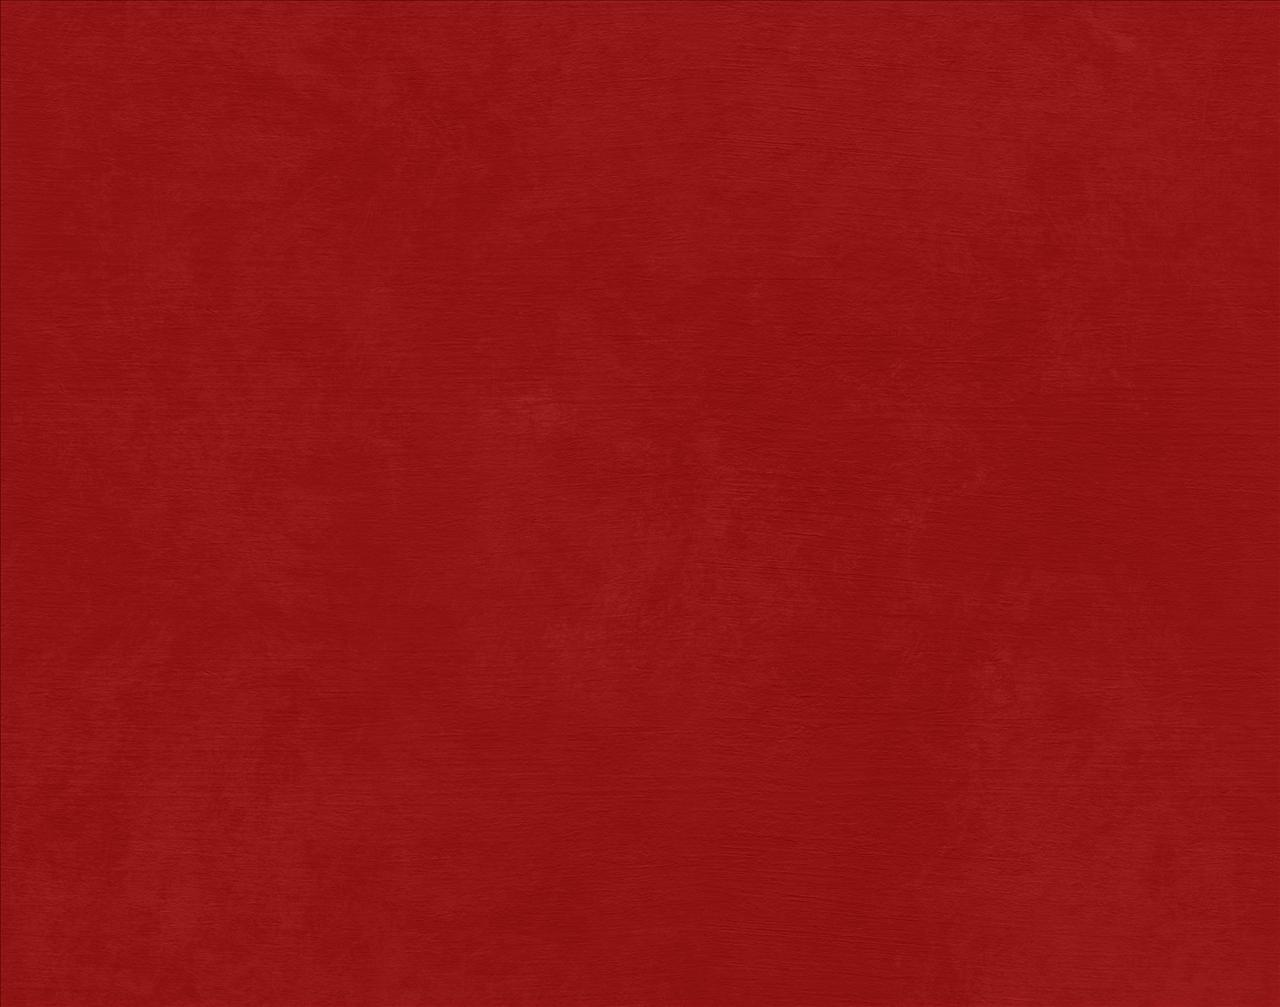 Red - O Canada Backgrounds